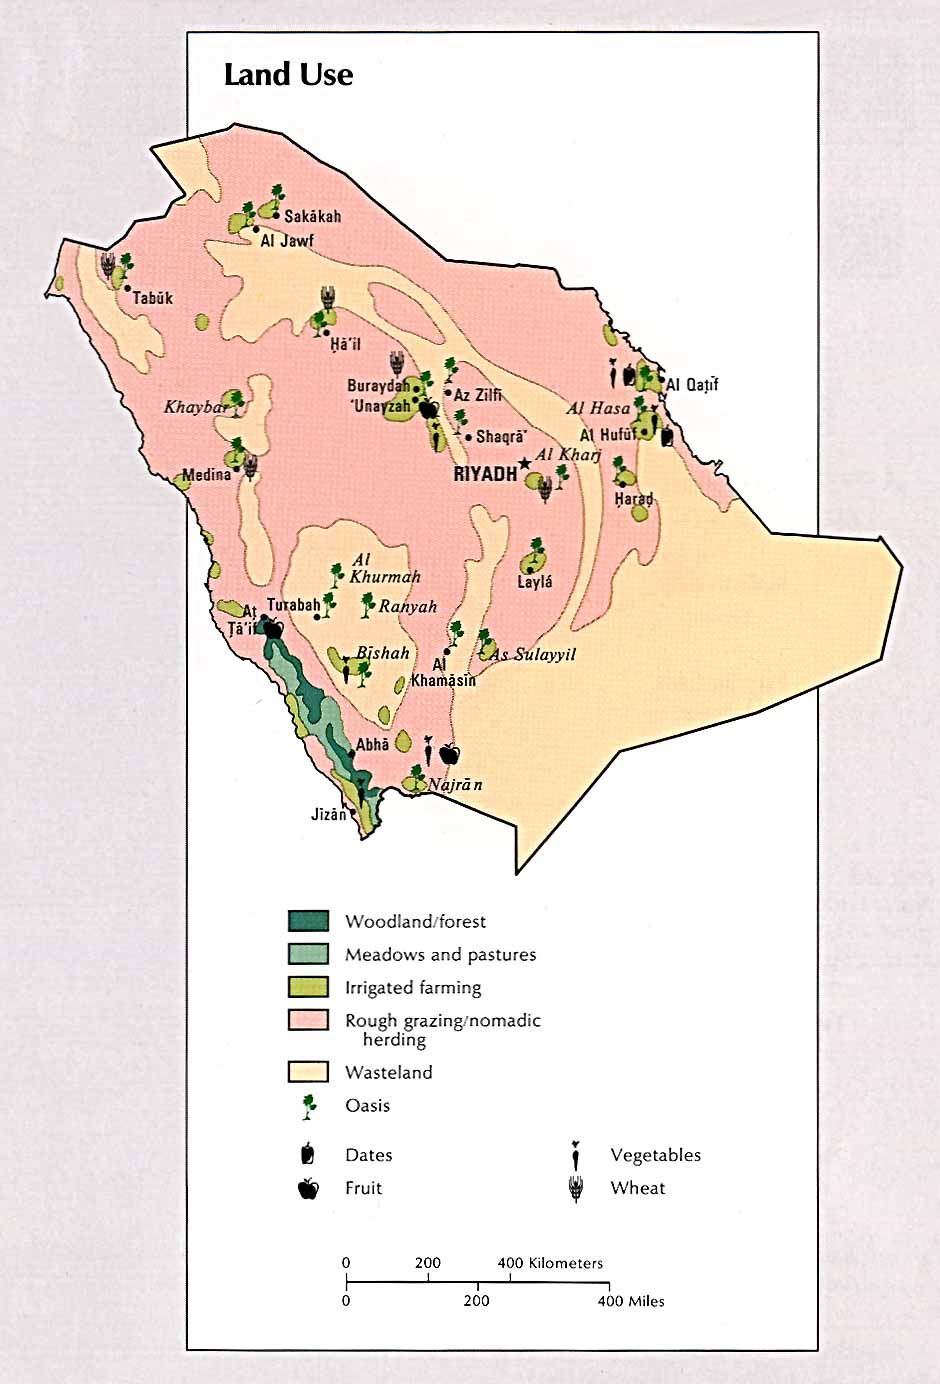 Main Natural Resources Of Saudi Arabia